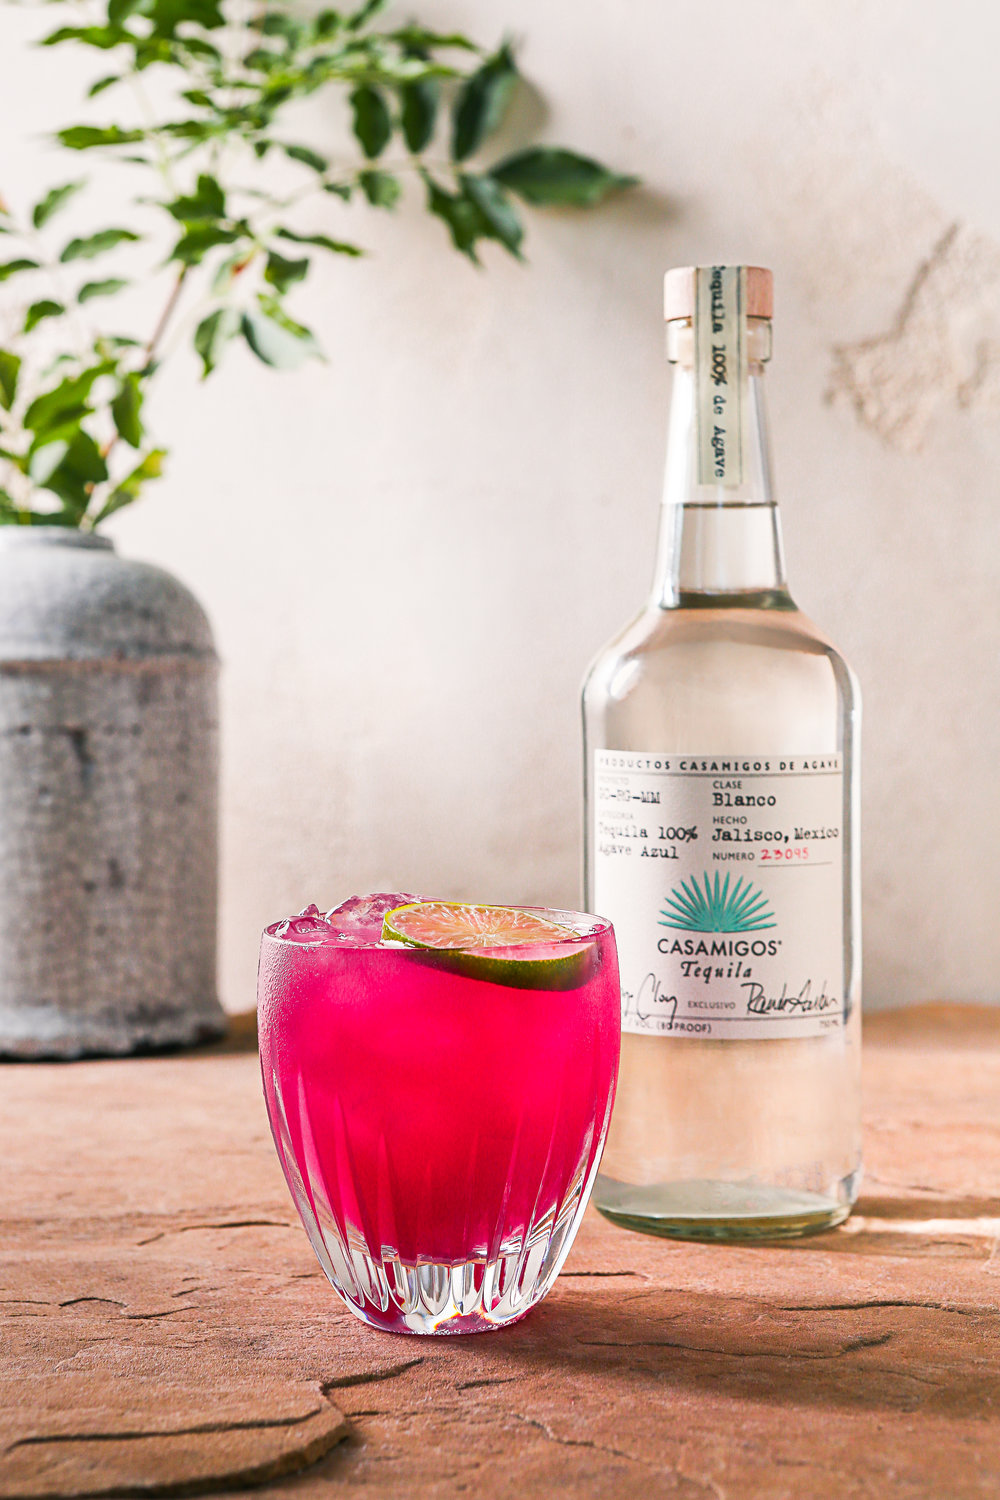 Casamigos Prickly Pear Margarita